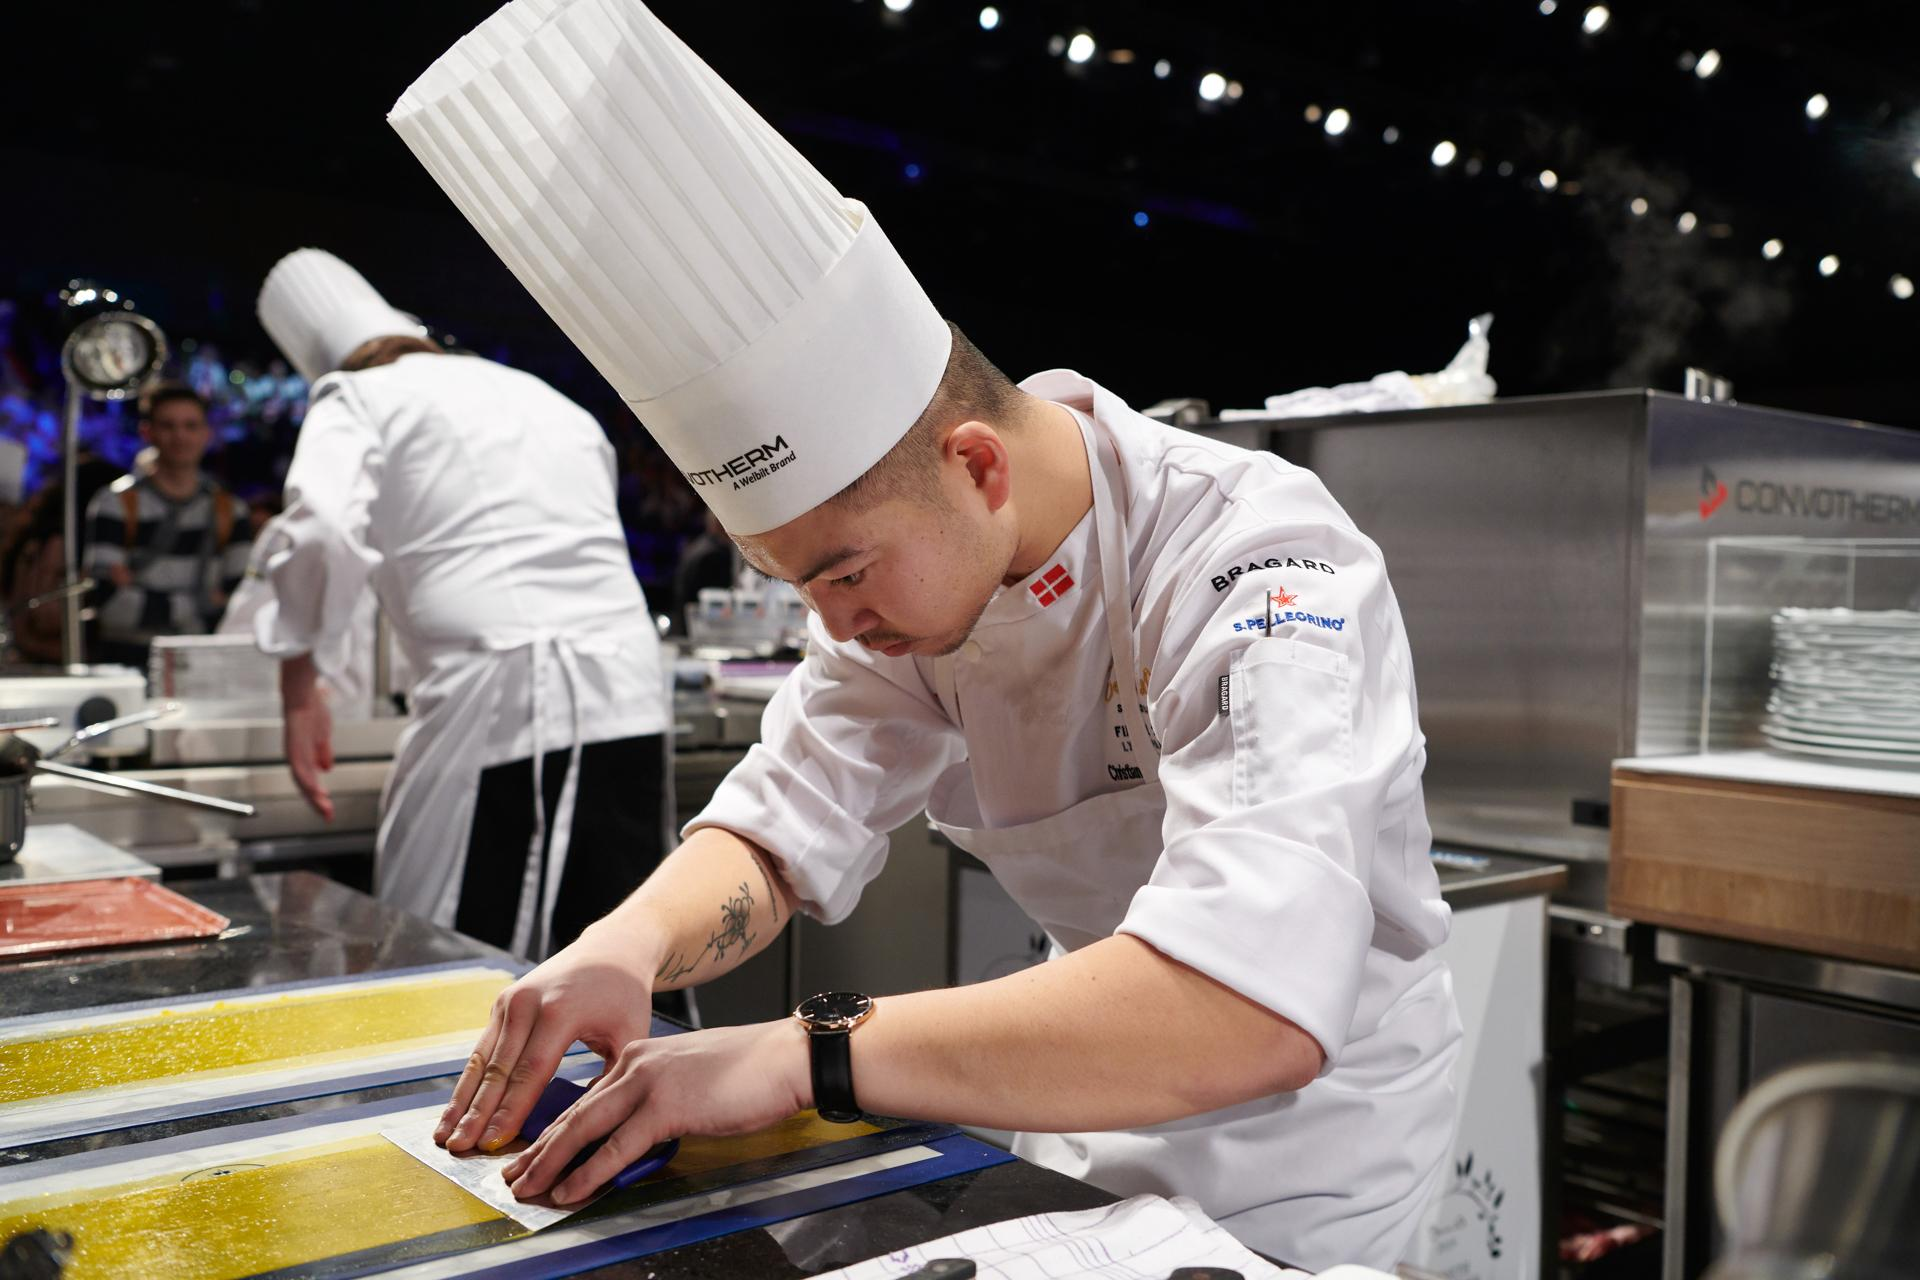 Team Denmark working on the plating at Bocuse d'Or 2019